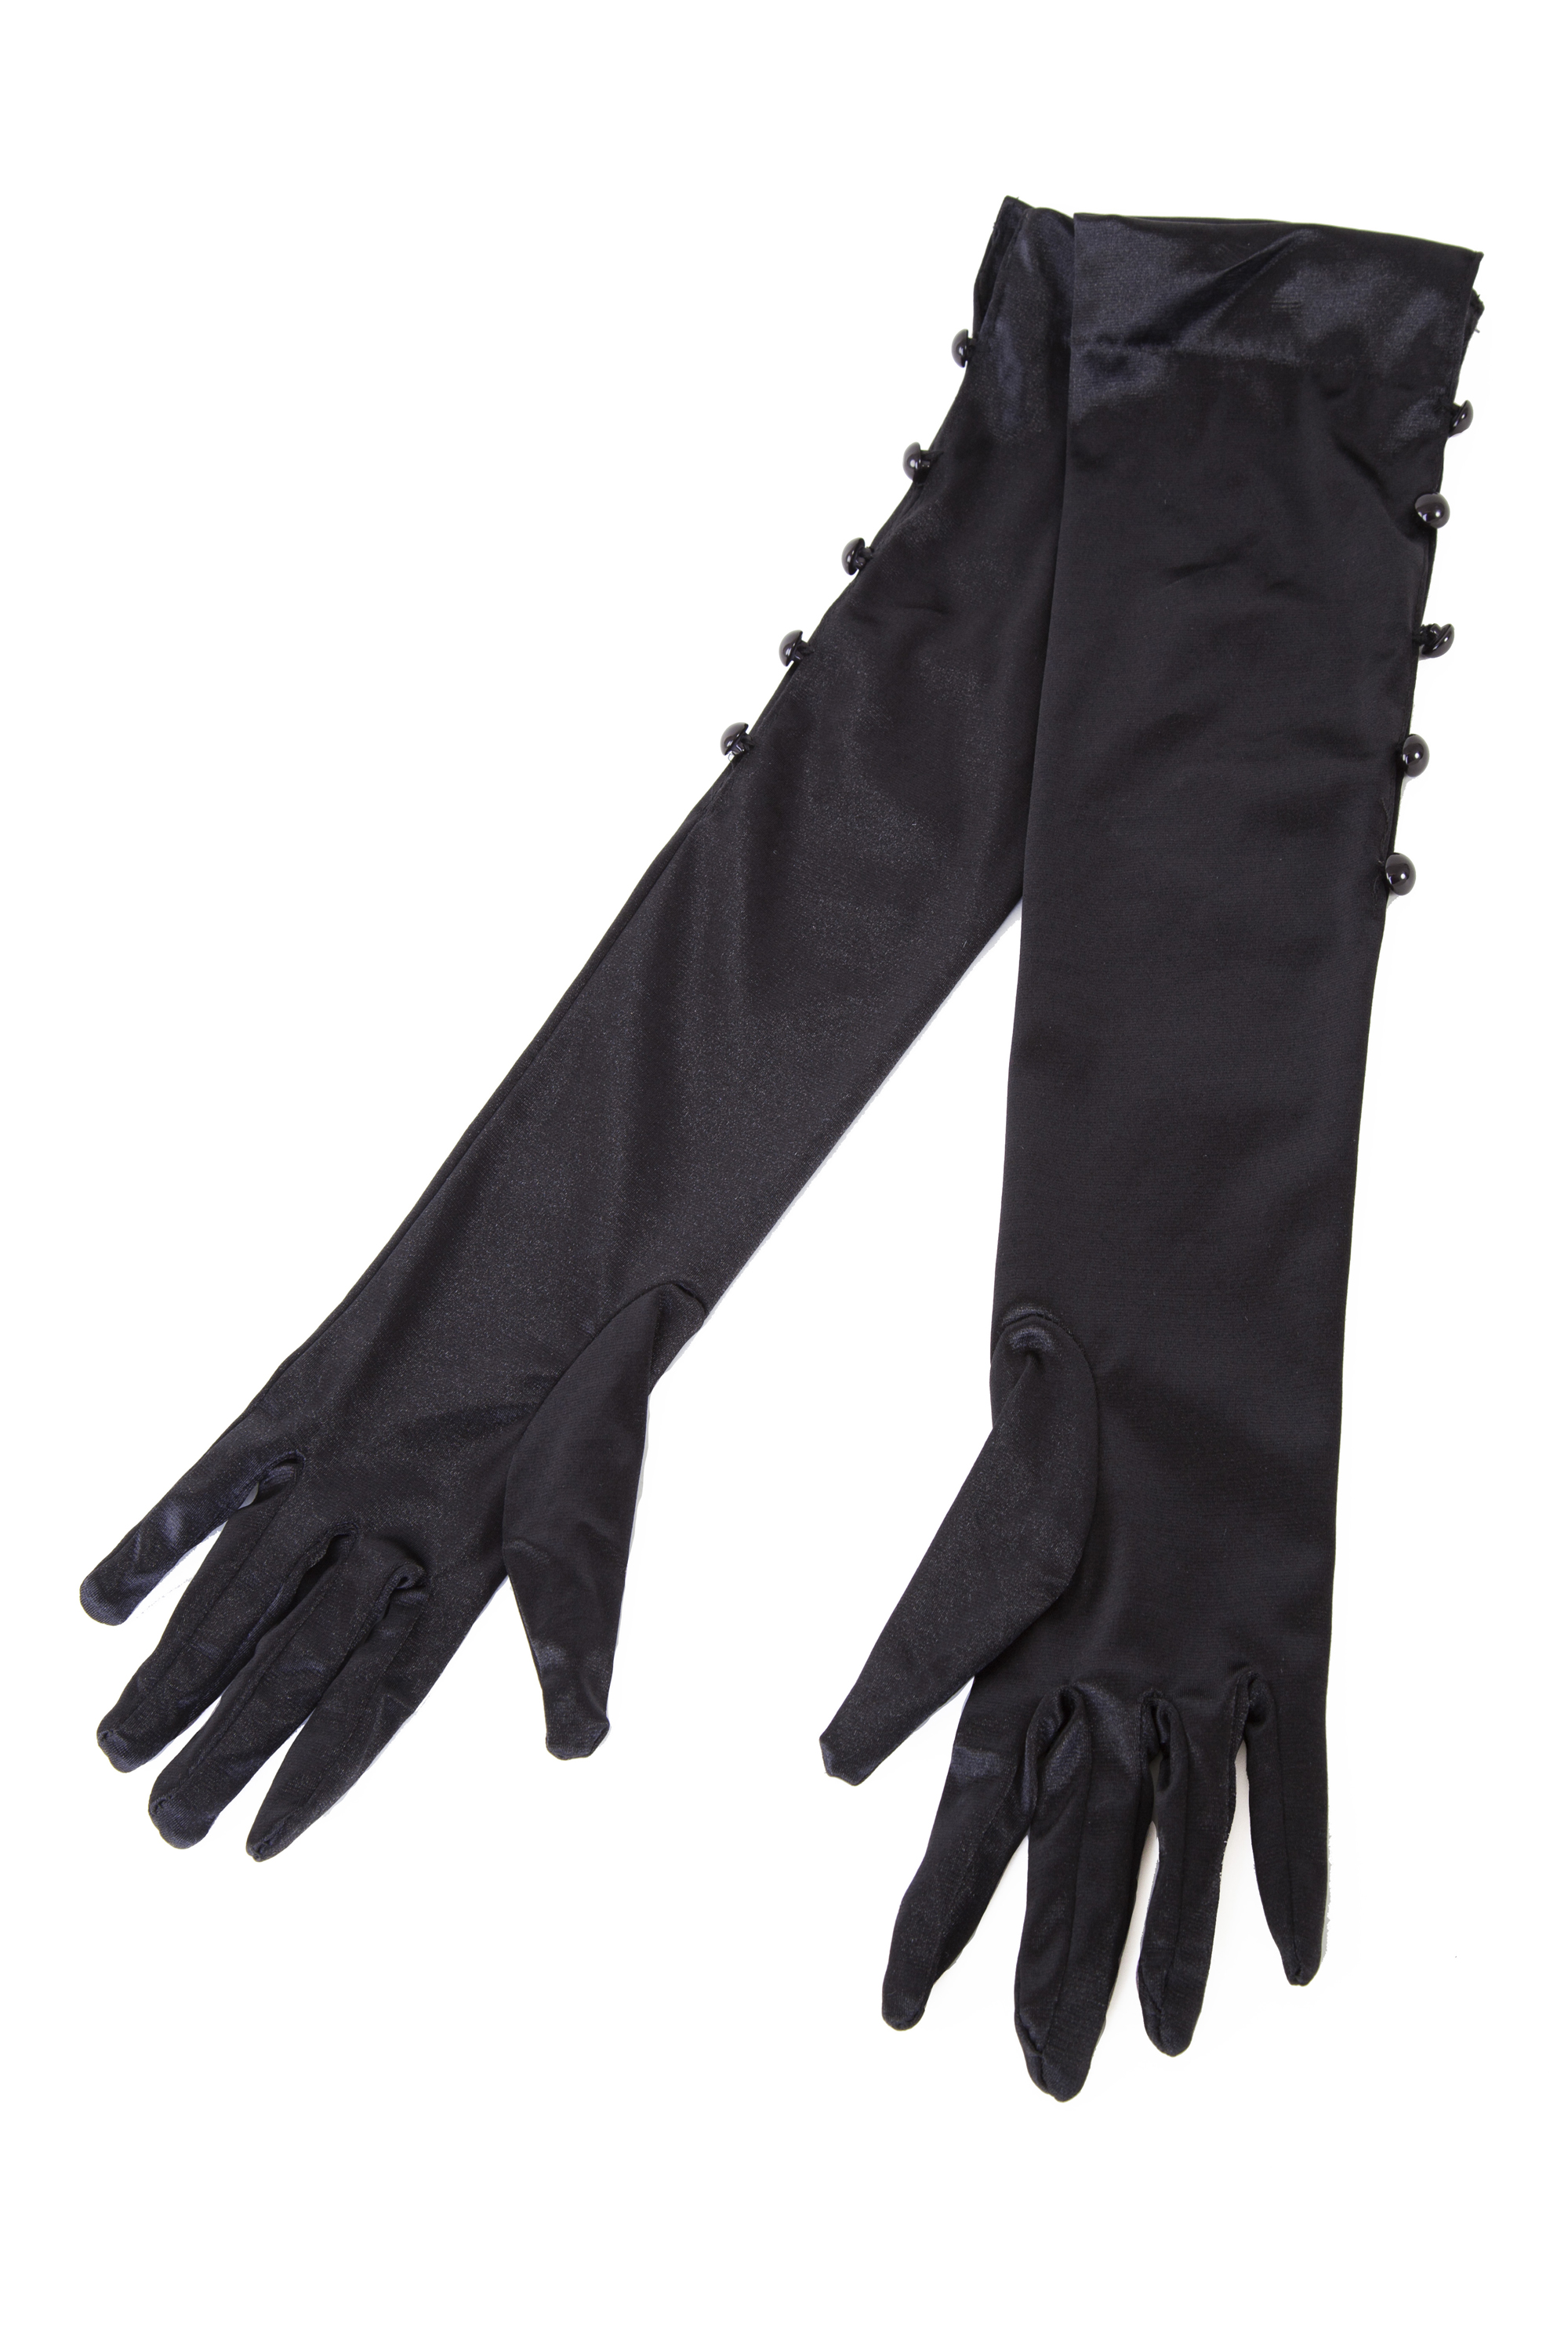 Vintage Gloves – Styles from 1900 to 1960s Satin Gloves by Bettie Page $18.00 AT vintagedancer.com